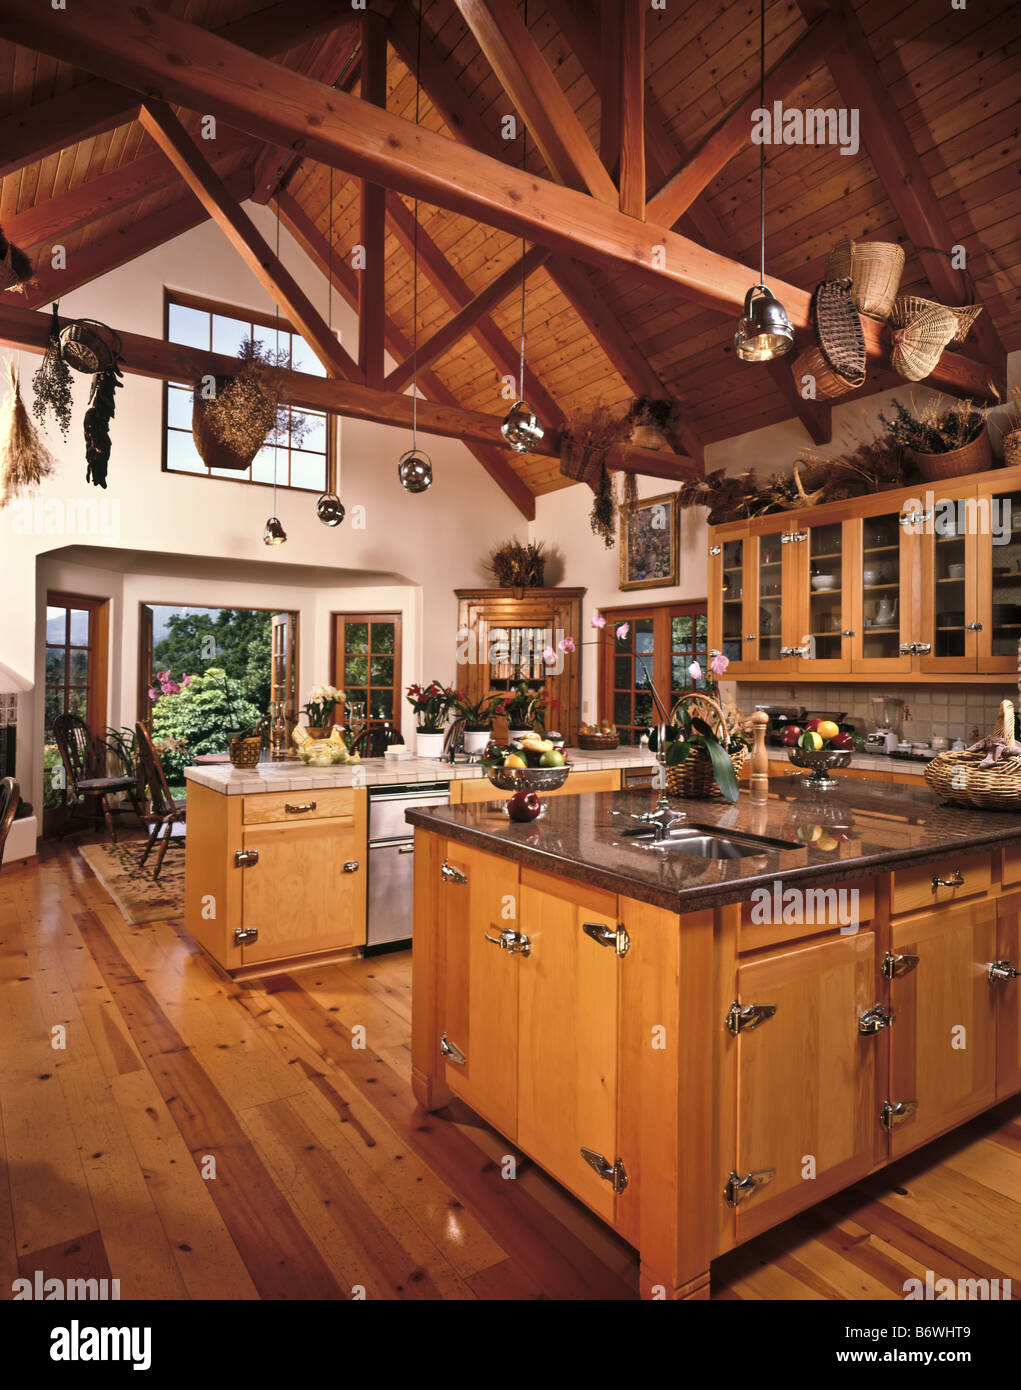 Country kitchen wood beamed ceiling cabinets spacious center stock country kitchen wood beamed ceiling cabinets spacious center island granite working area lighting house home interior aloadofball Images